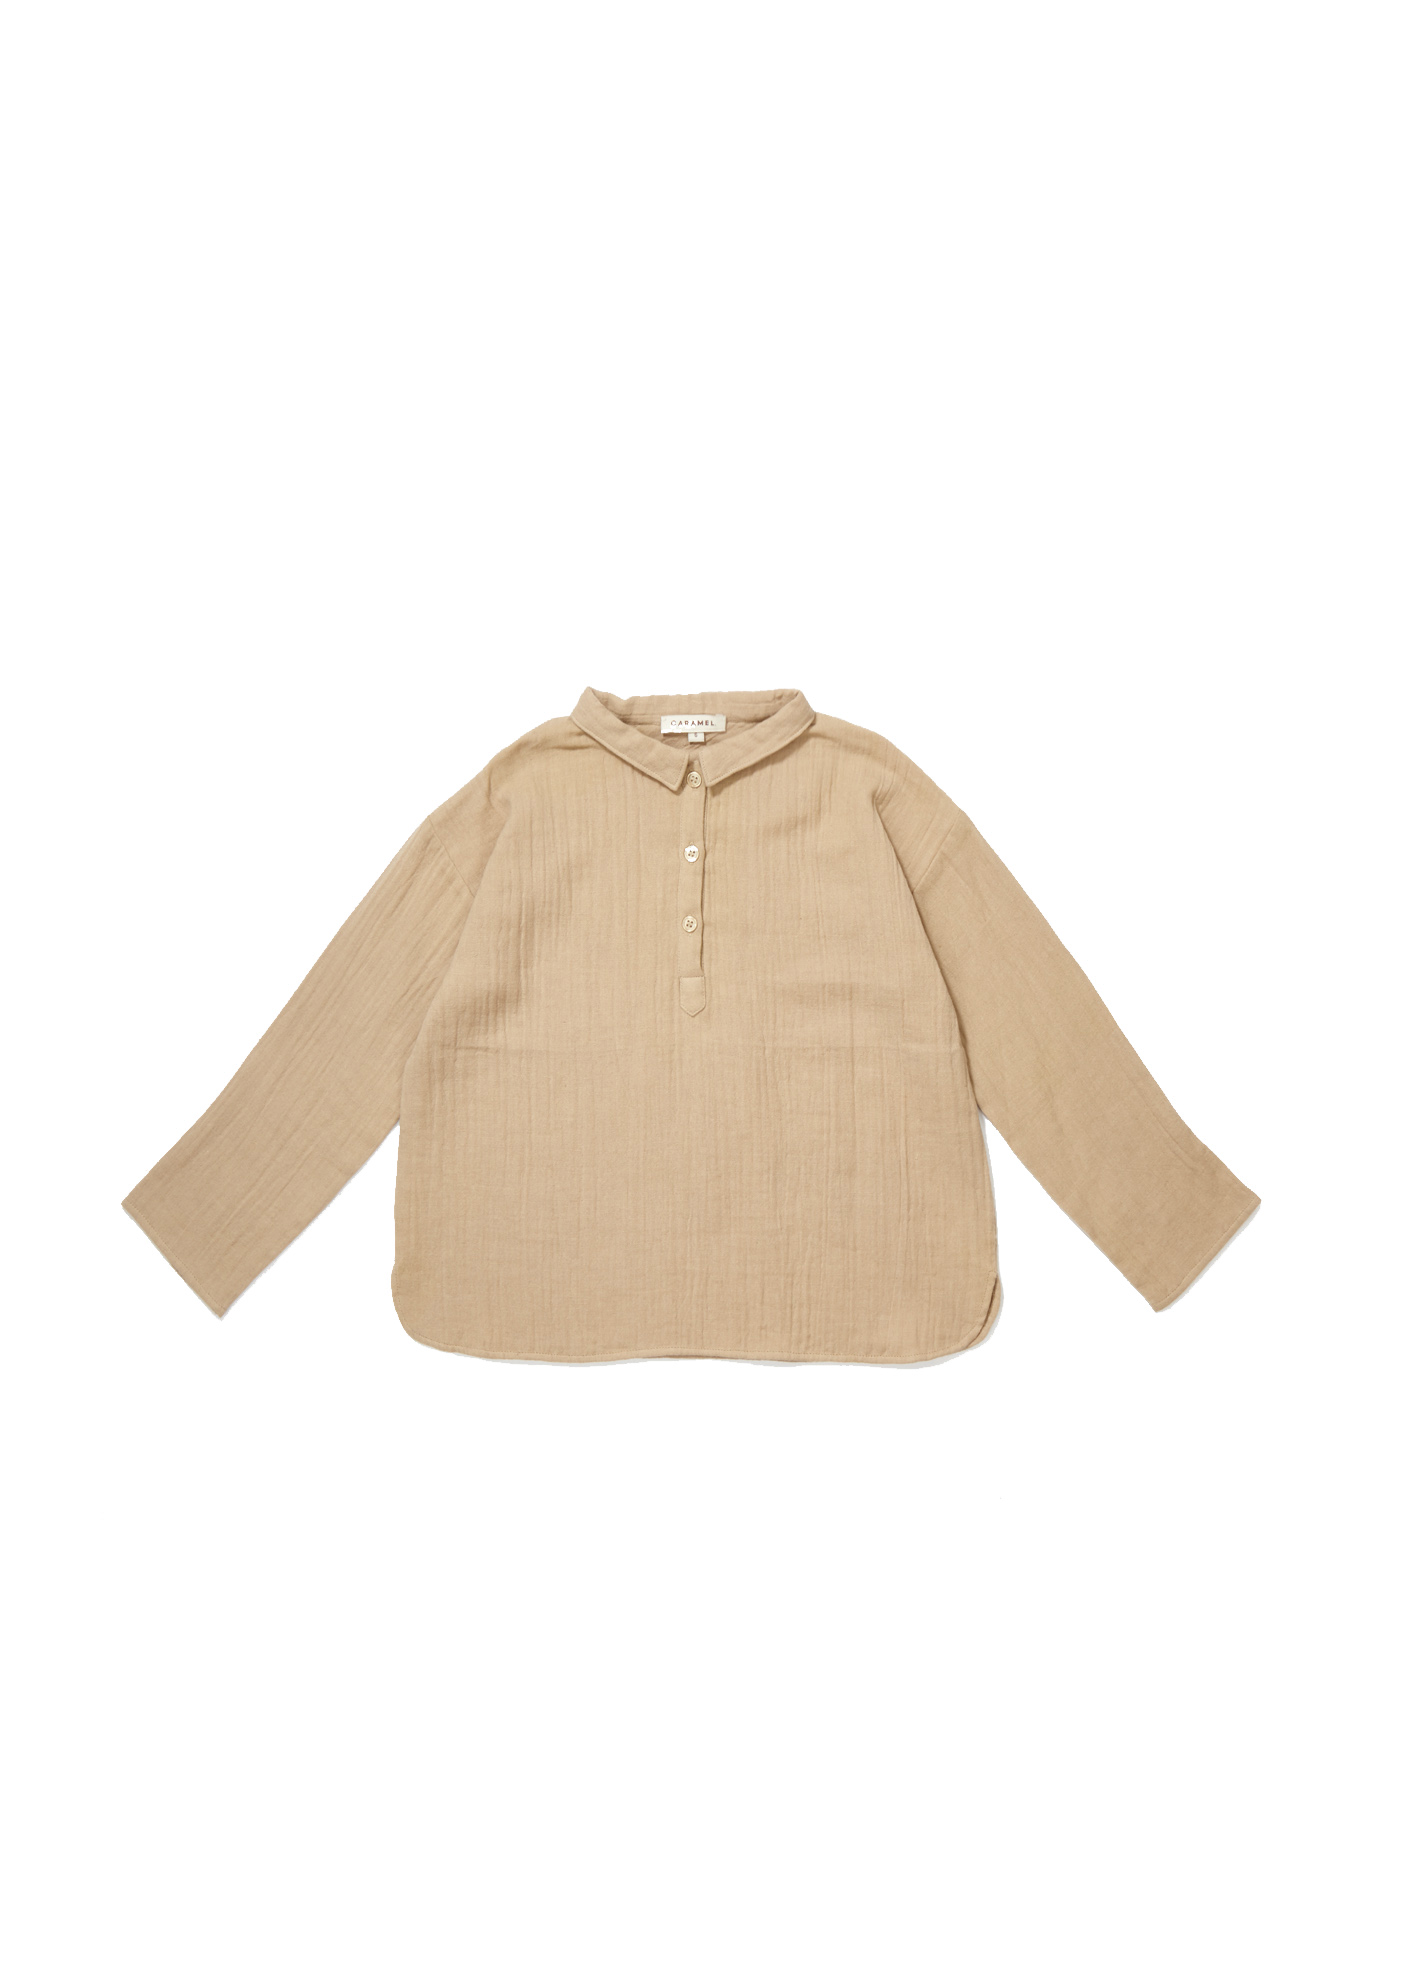 Caramel Beige - Camber Shirt - Clothing